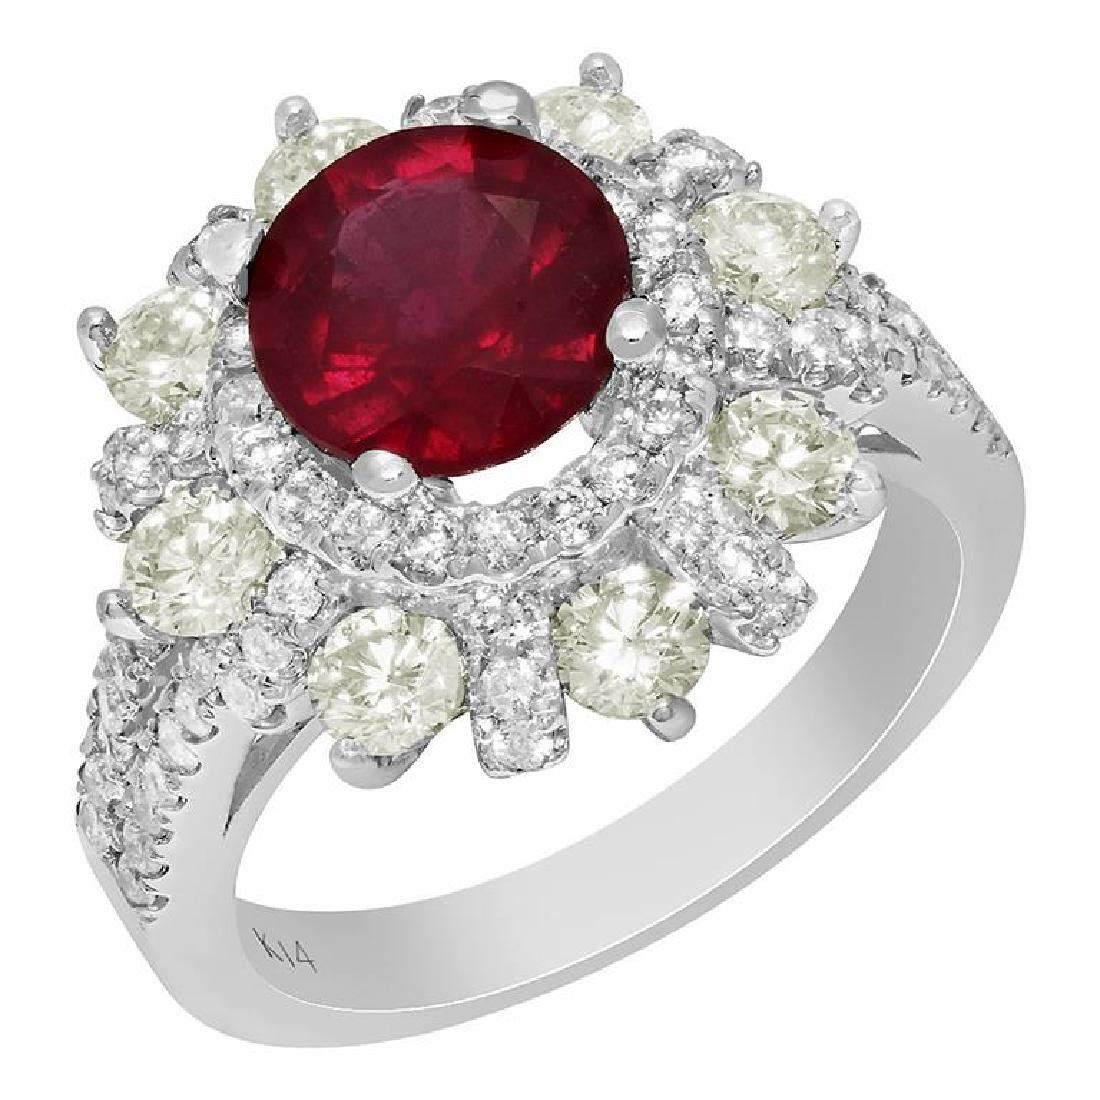 14k White Gold 2.20ct Ruby 1.88ct Diamond Ring